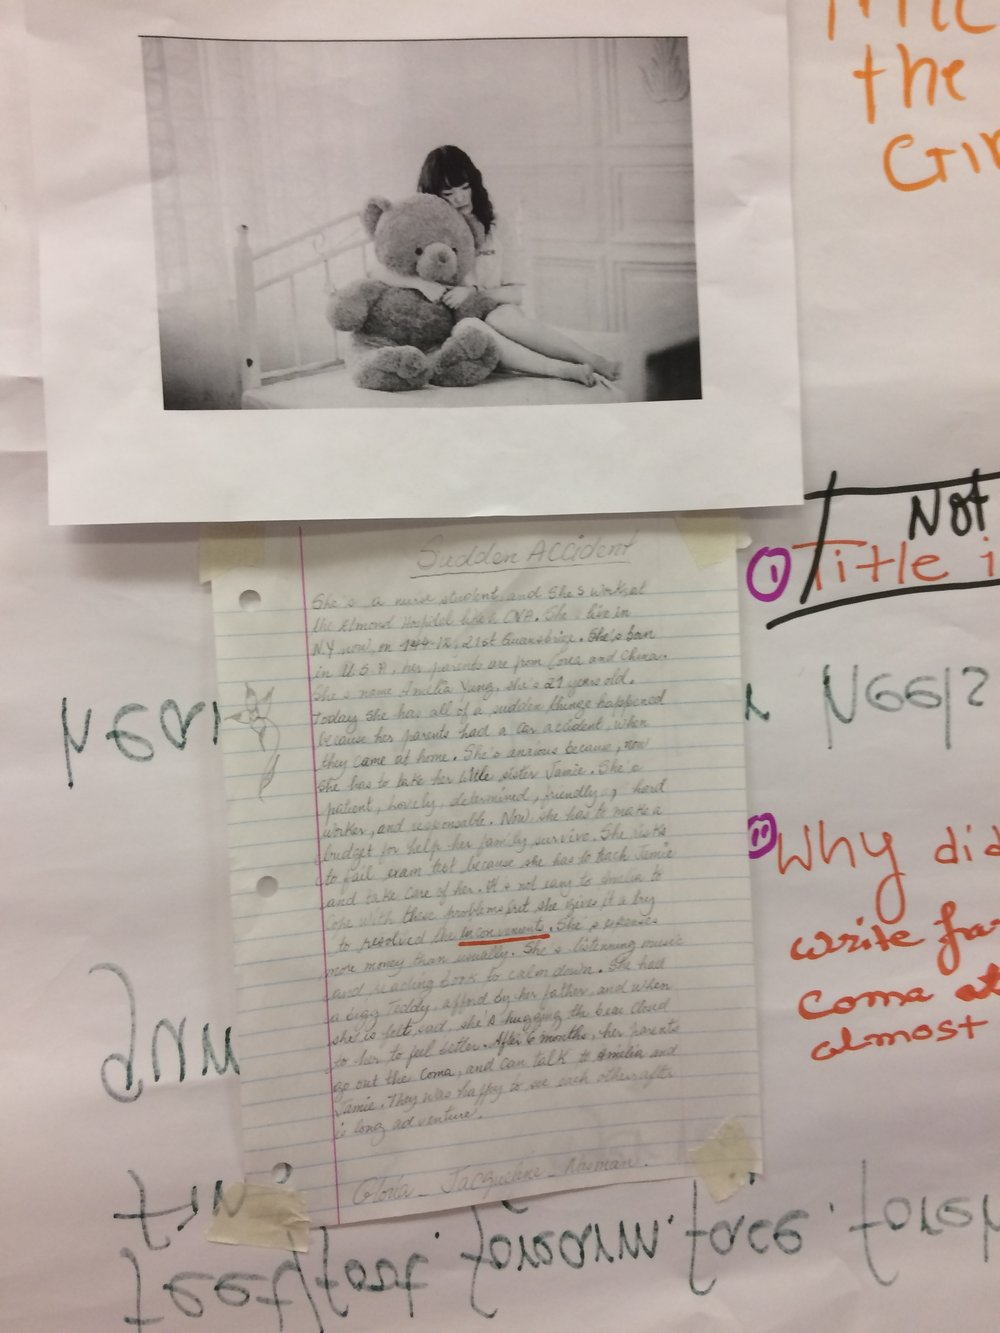 For this activity, students got into small groups, chose a photo, and wrote a story about the person in the photo.